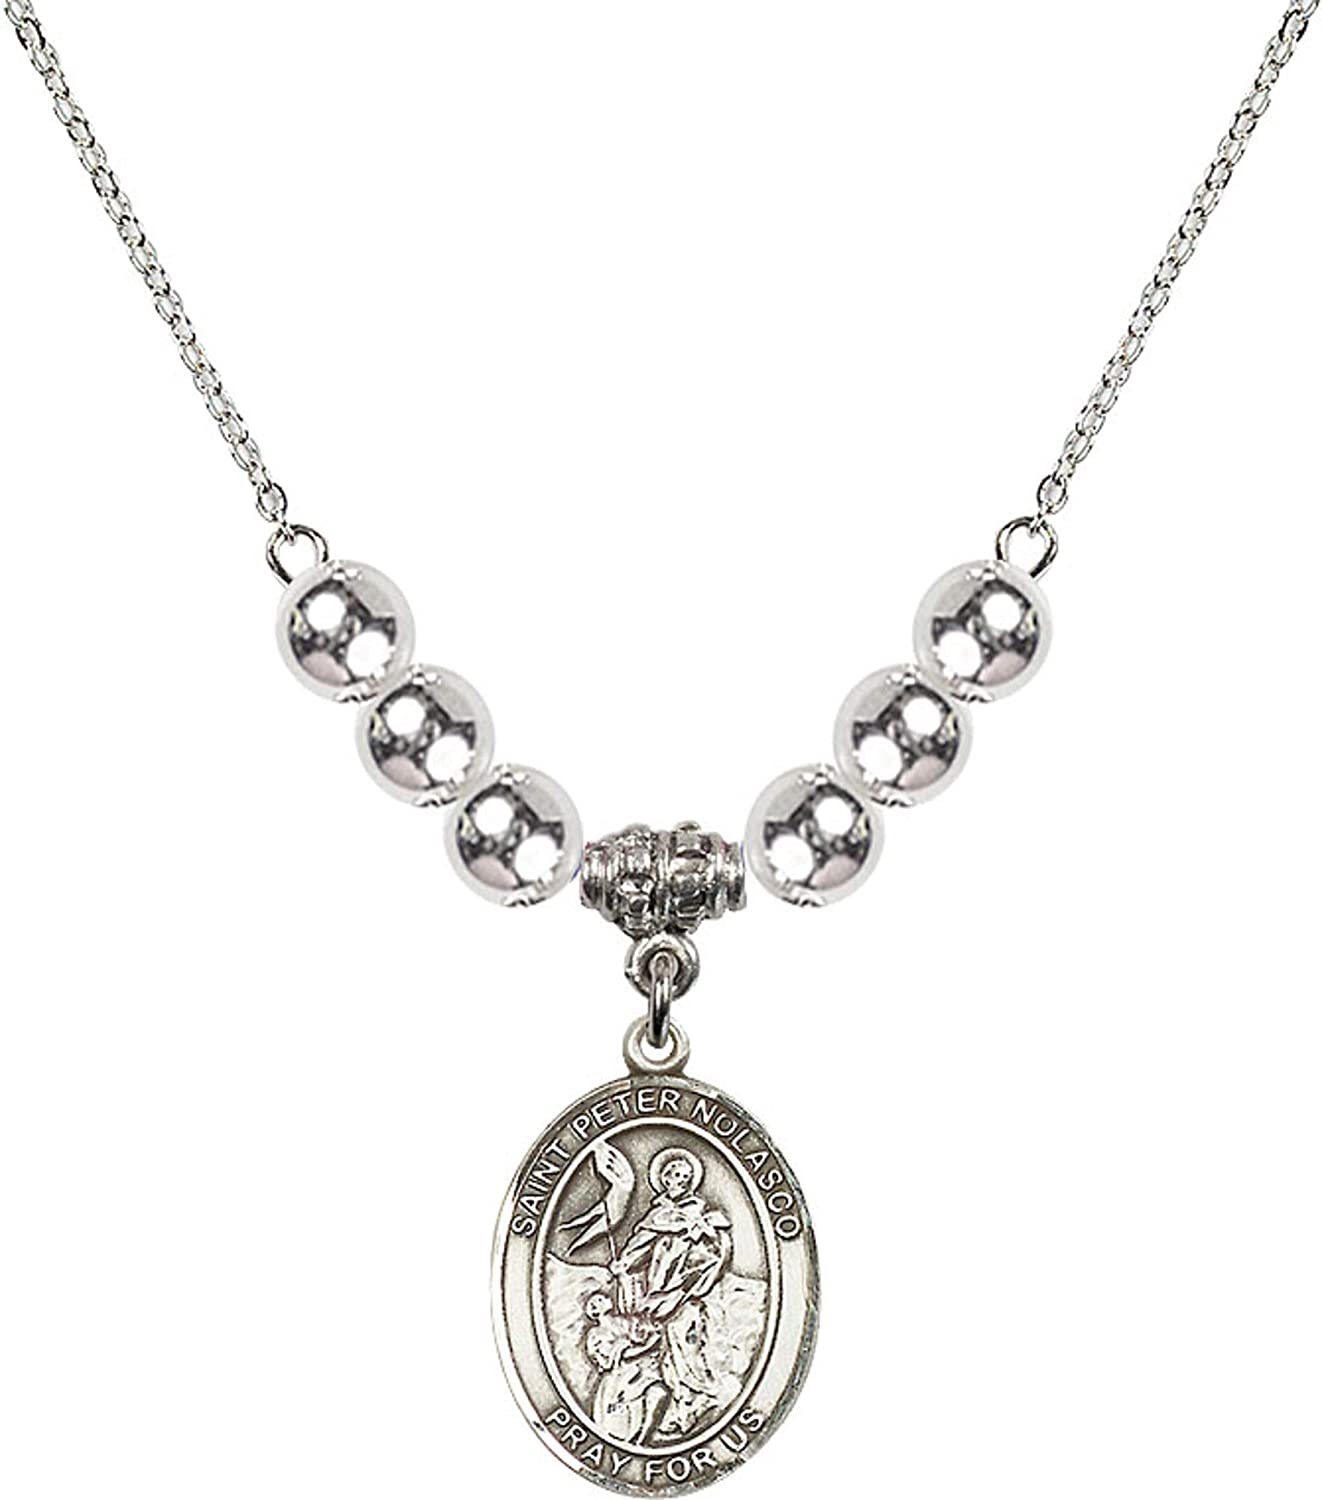 Bonyak Jewelry 18 Inch Rhodium Plated Necklace w// 6mm Sterling Silver Beads and Saint Peter Nolasco Charm